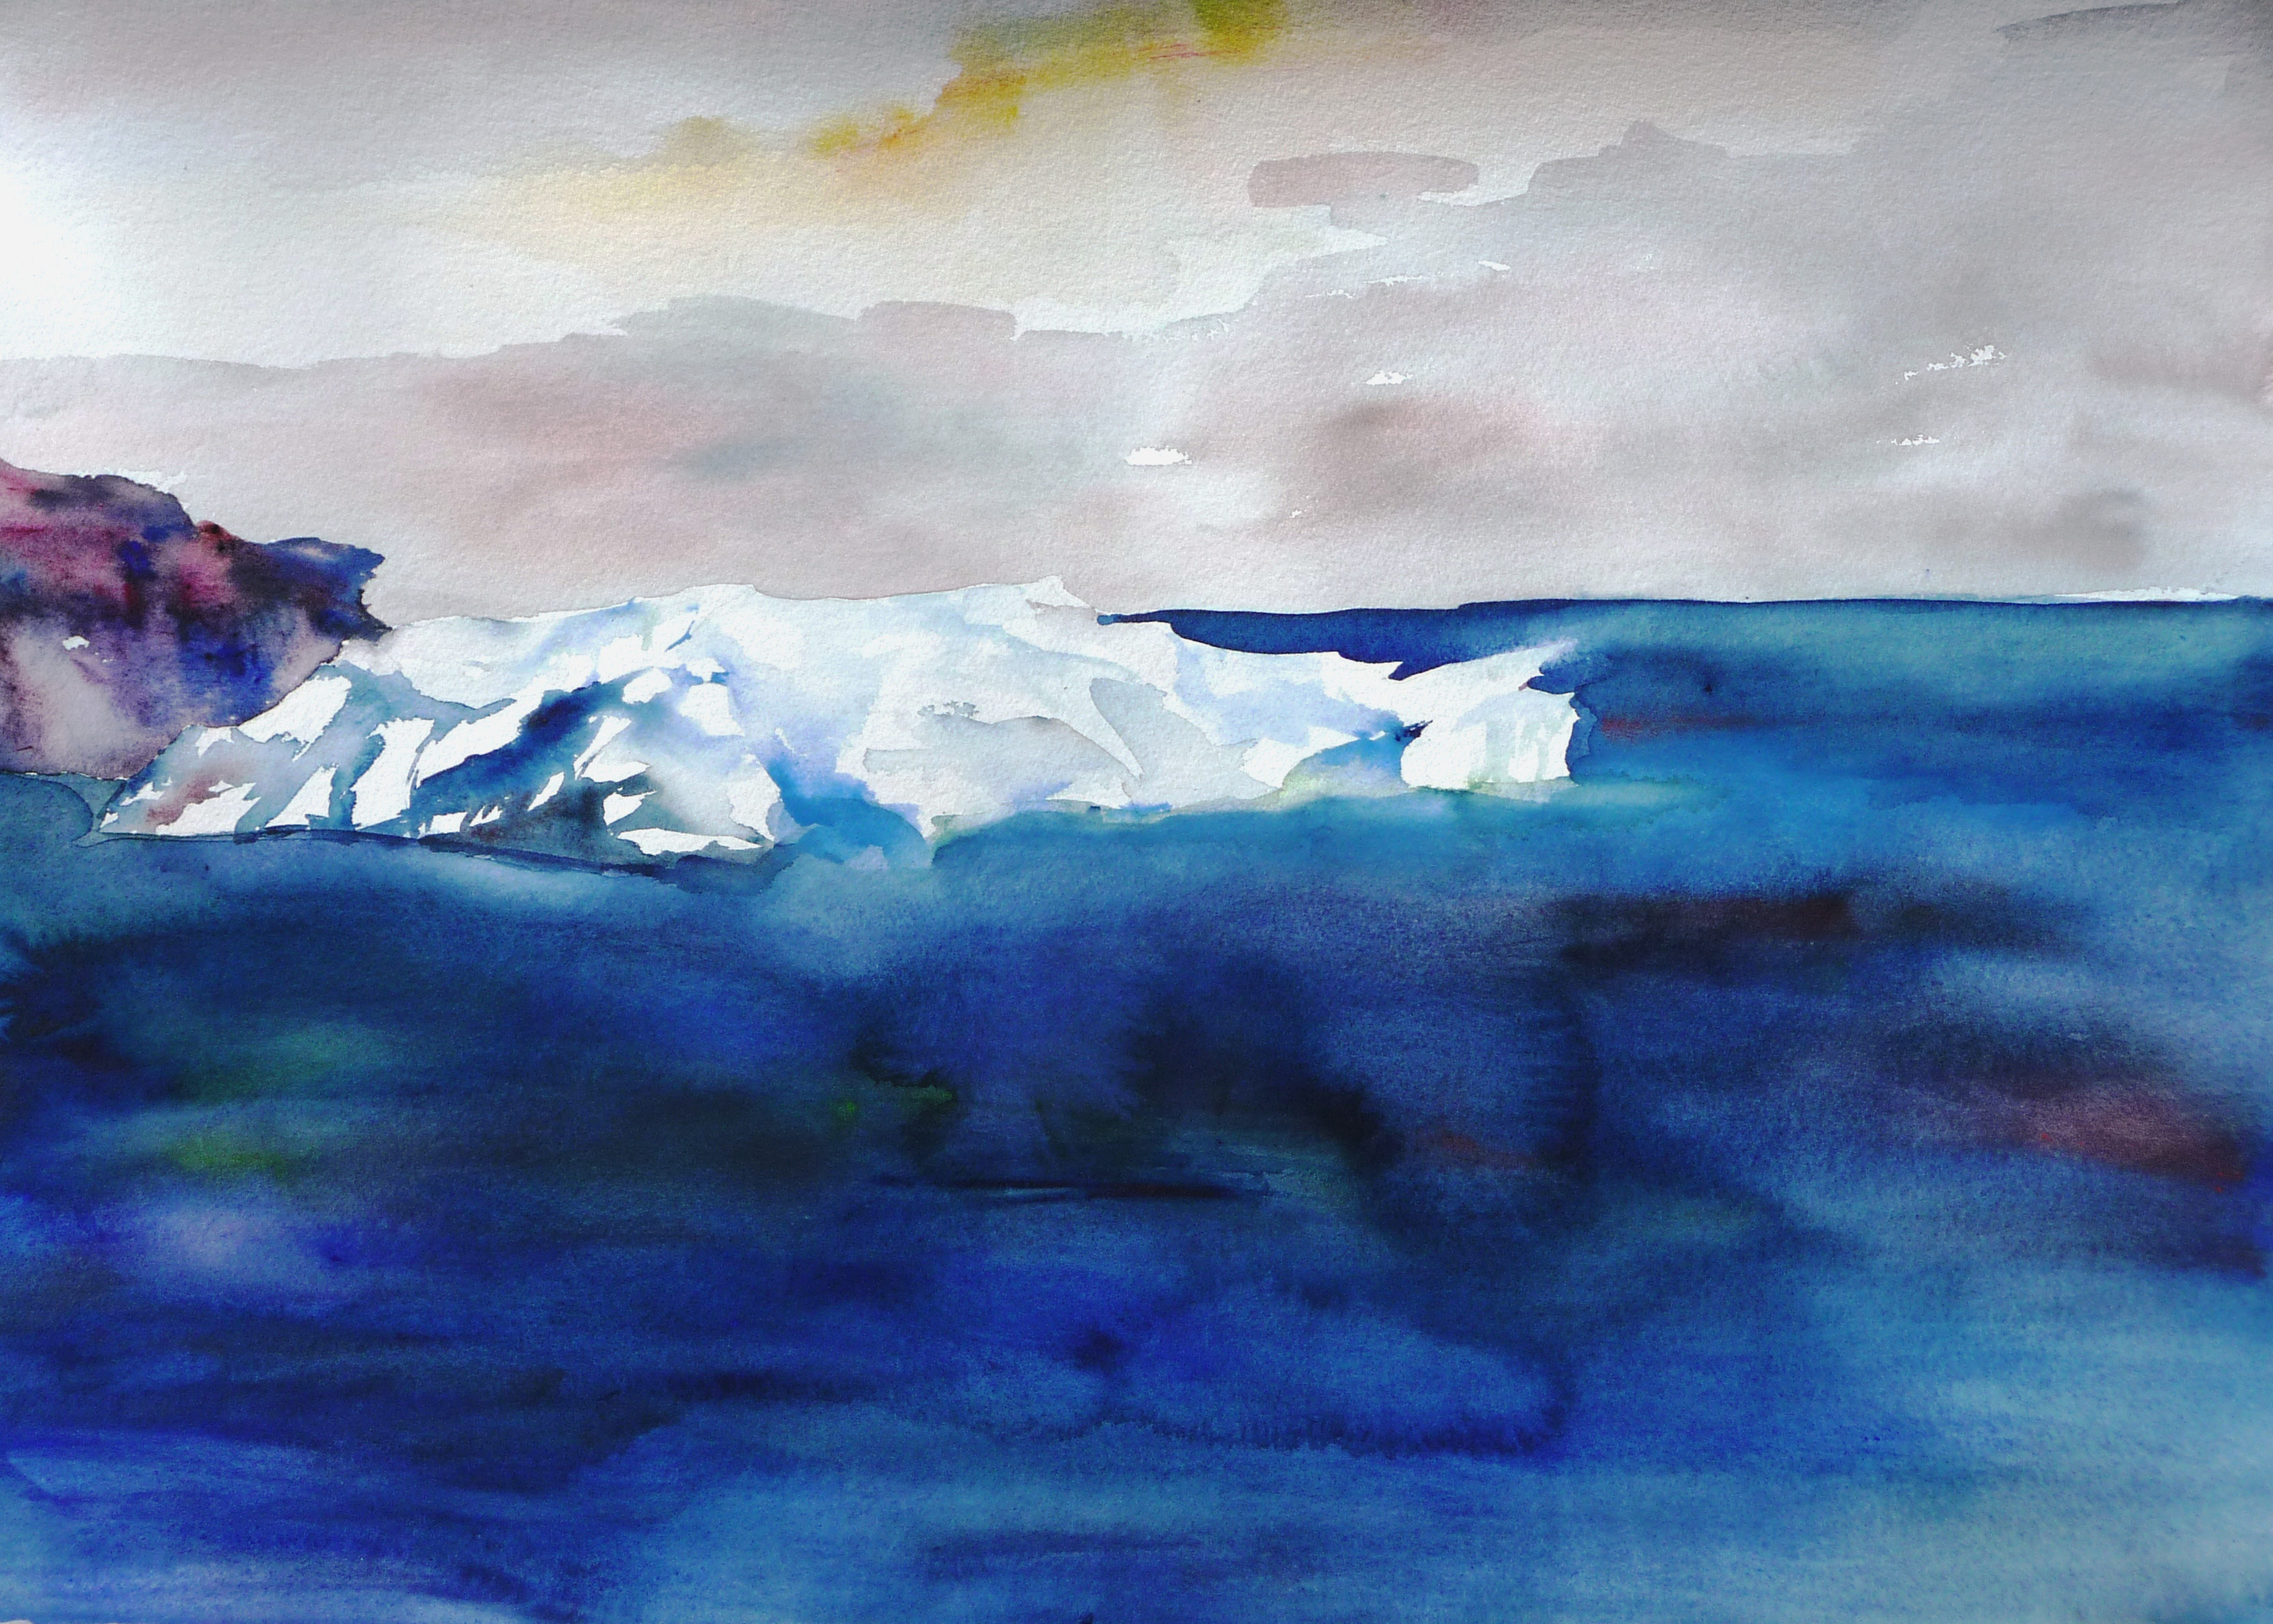 Antarctica Iceberg, watercolour painting by Lisa Goren